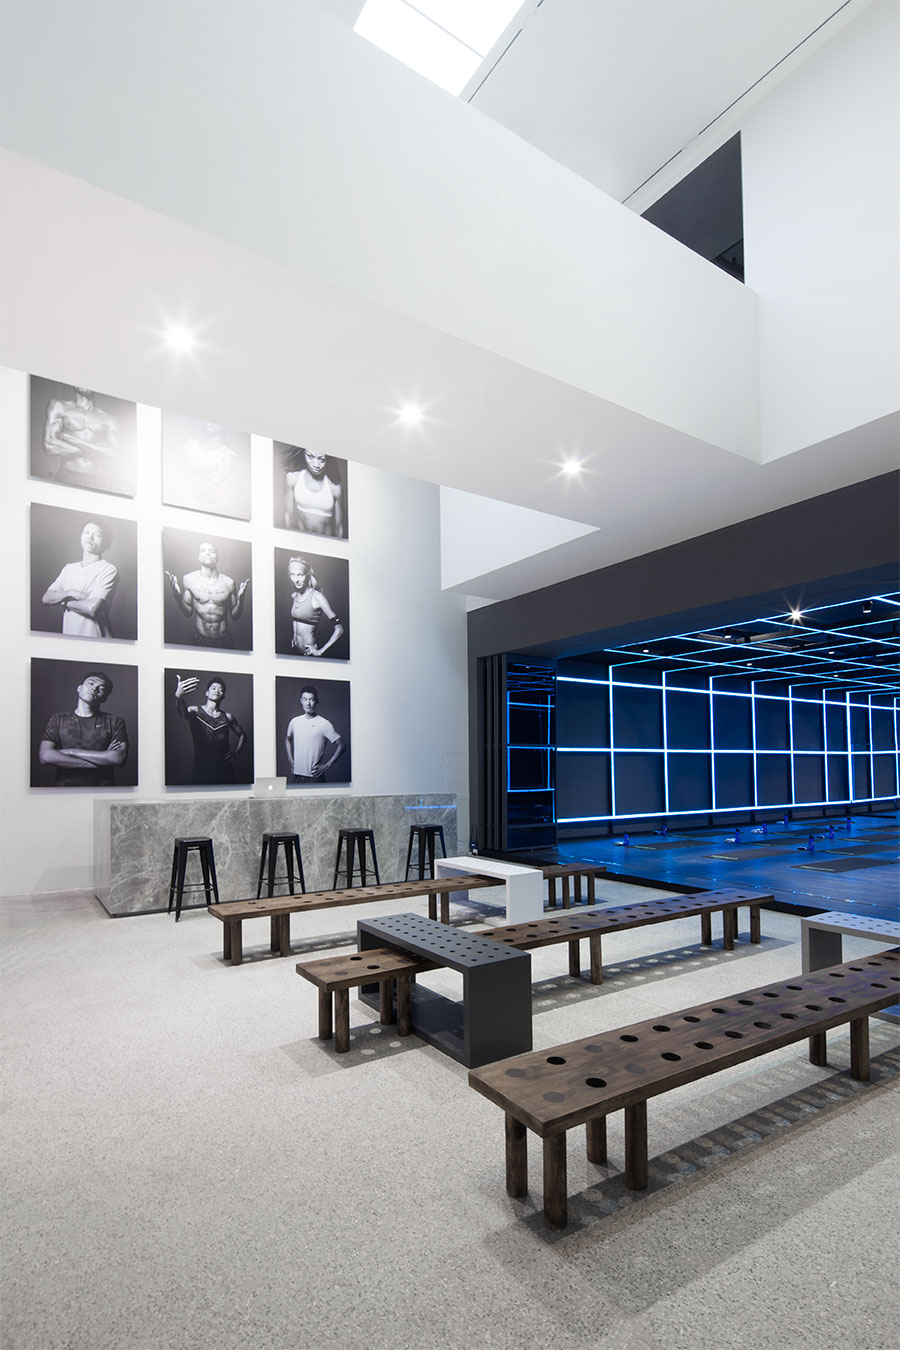 NKS_Lounge_04-coordination-asia-design-agency-firm-nike-studio-bejing-popup-exhibition-retail